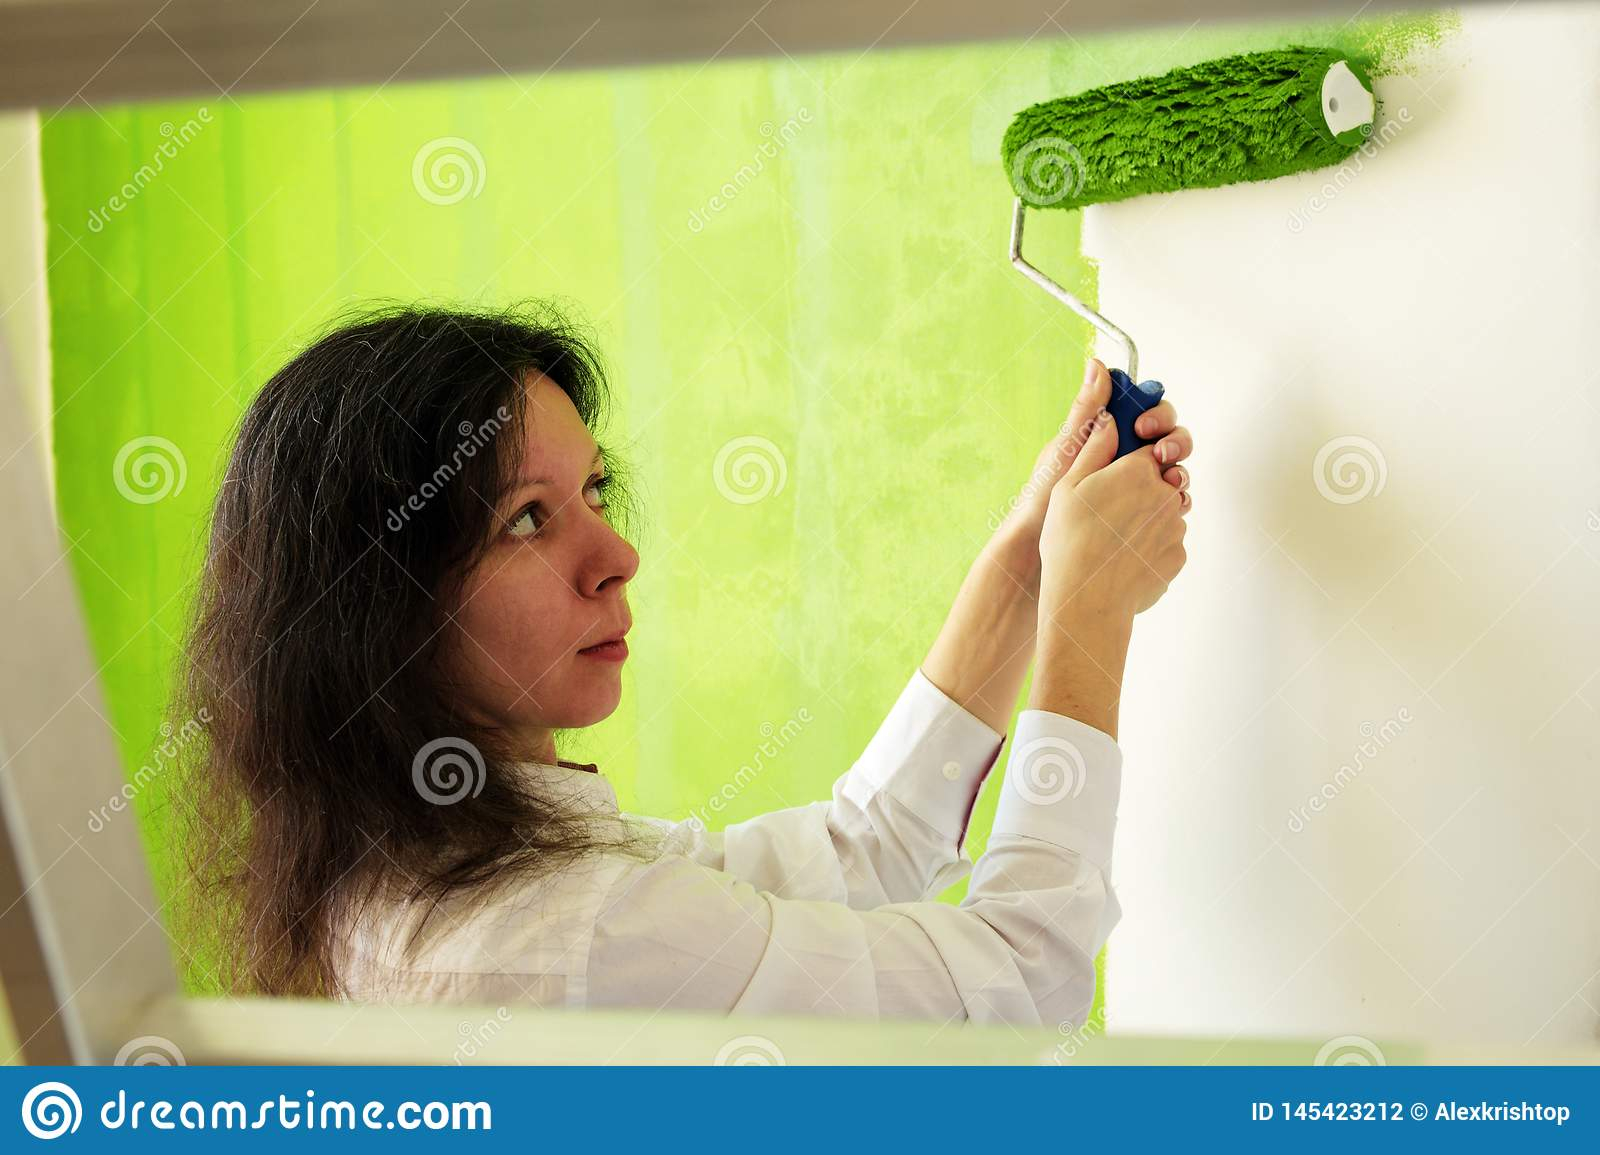 Pretty young woman in a white shirt is carefully painting green interior wall with roller in a new home